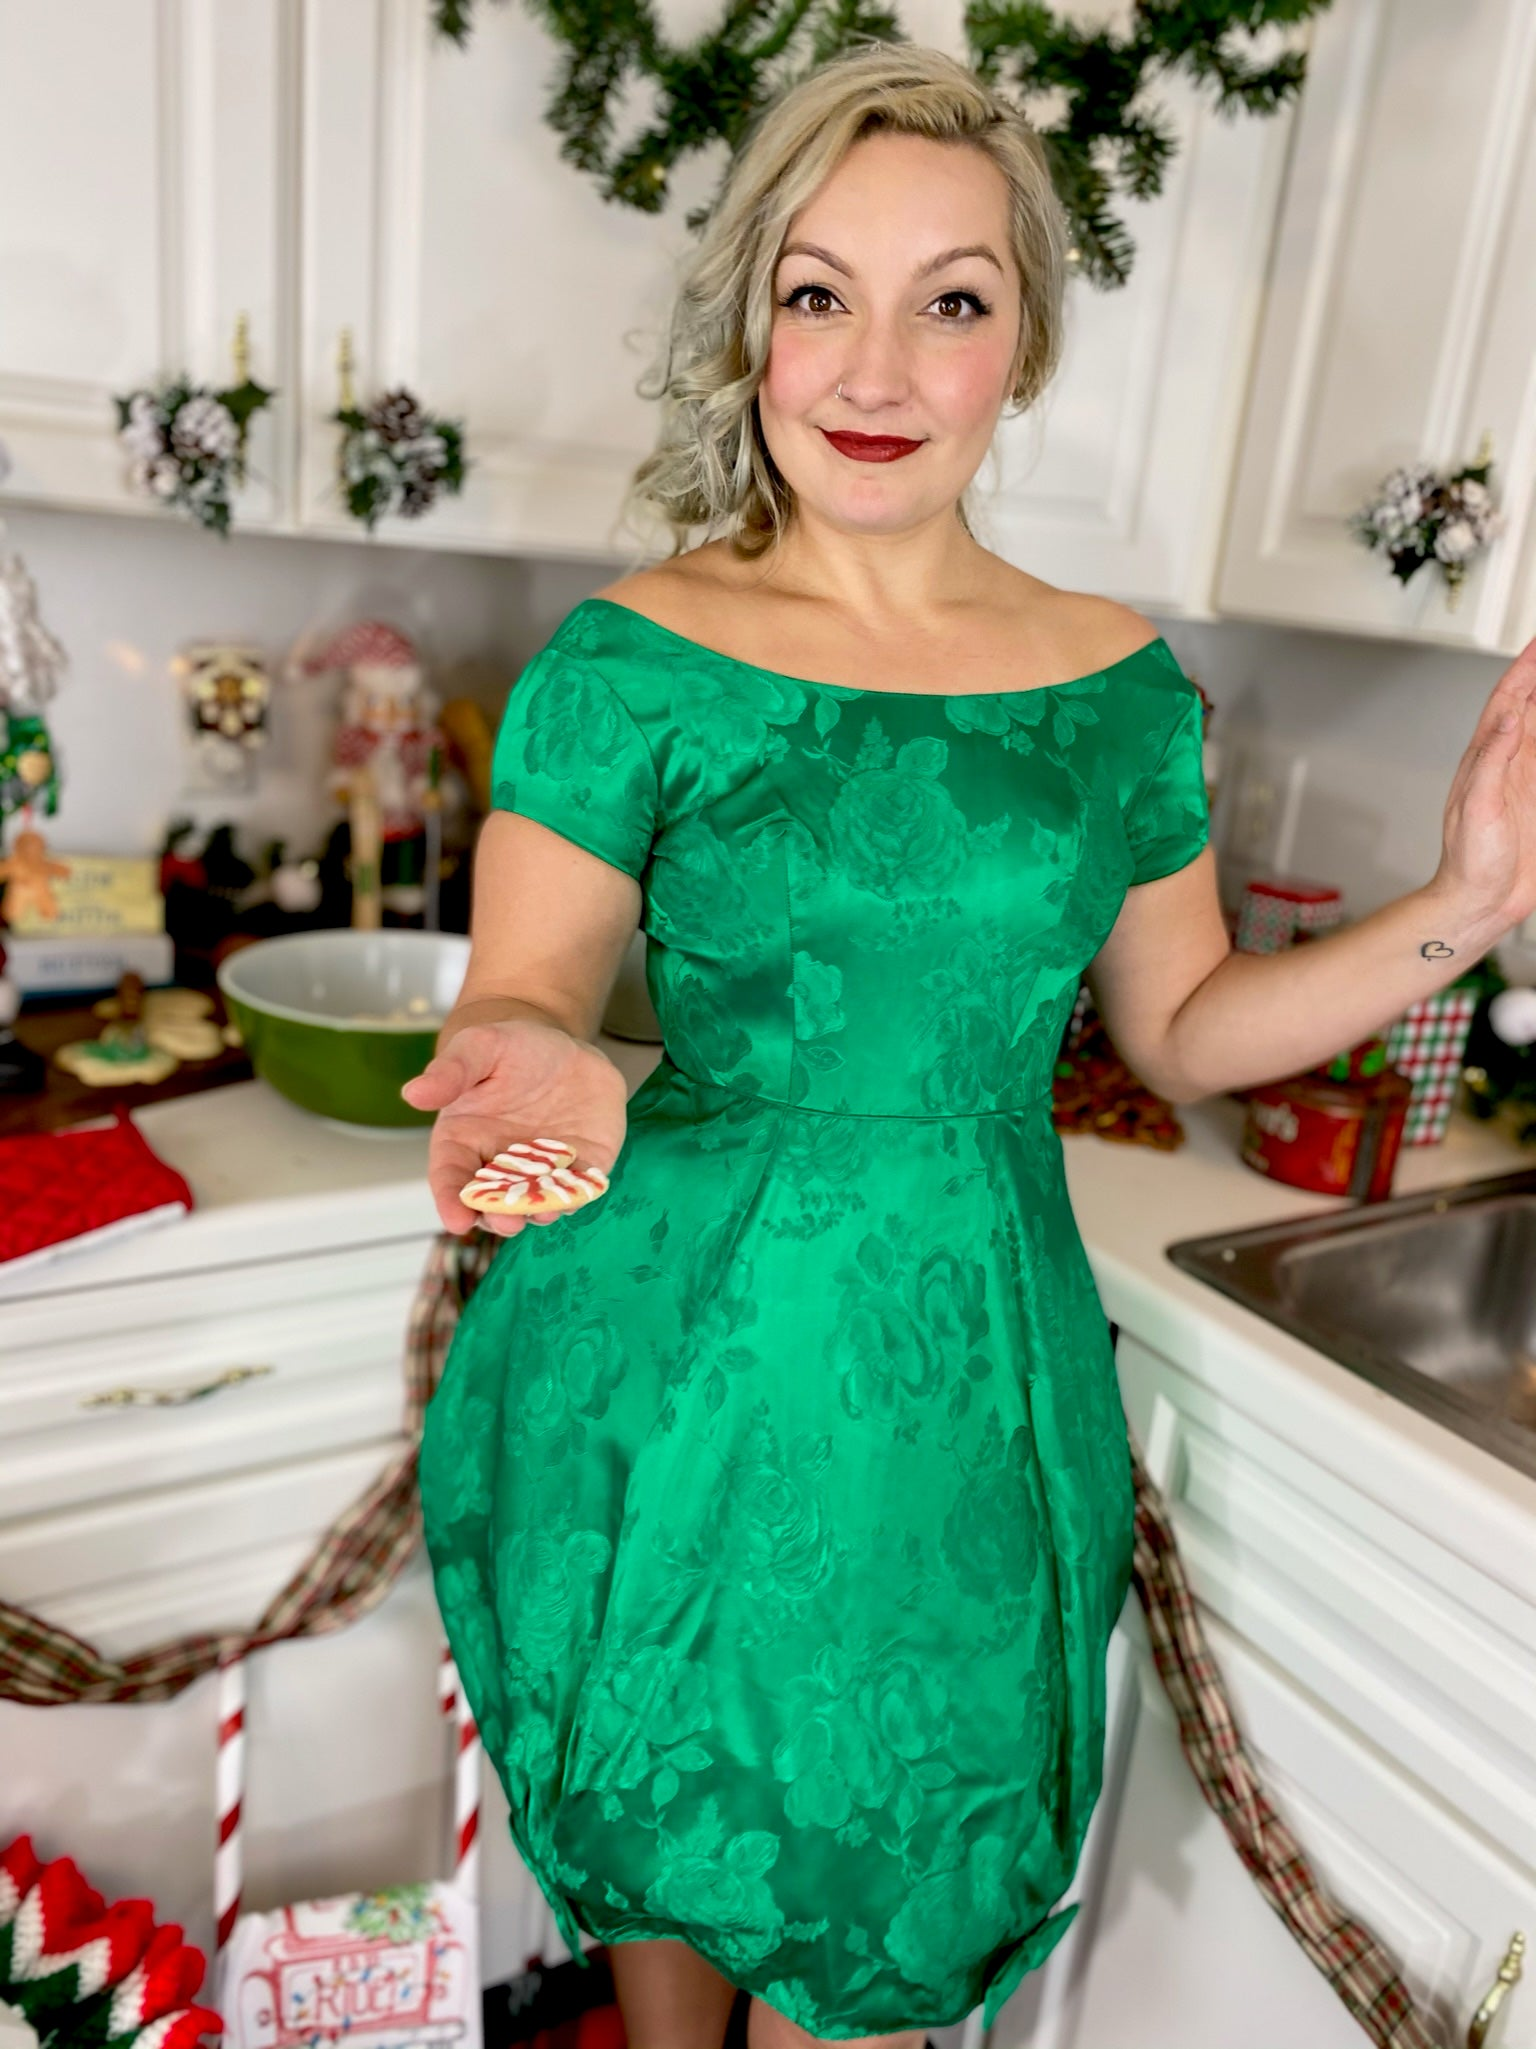 Green Brocade Dress with Tulle Skirt